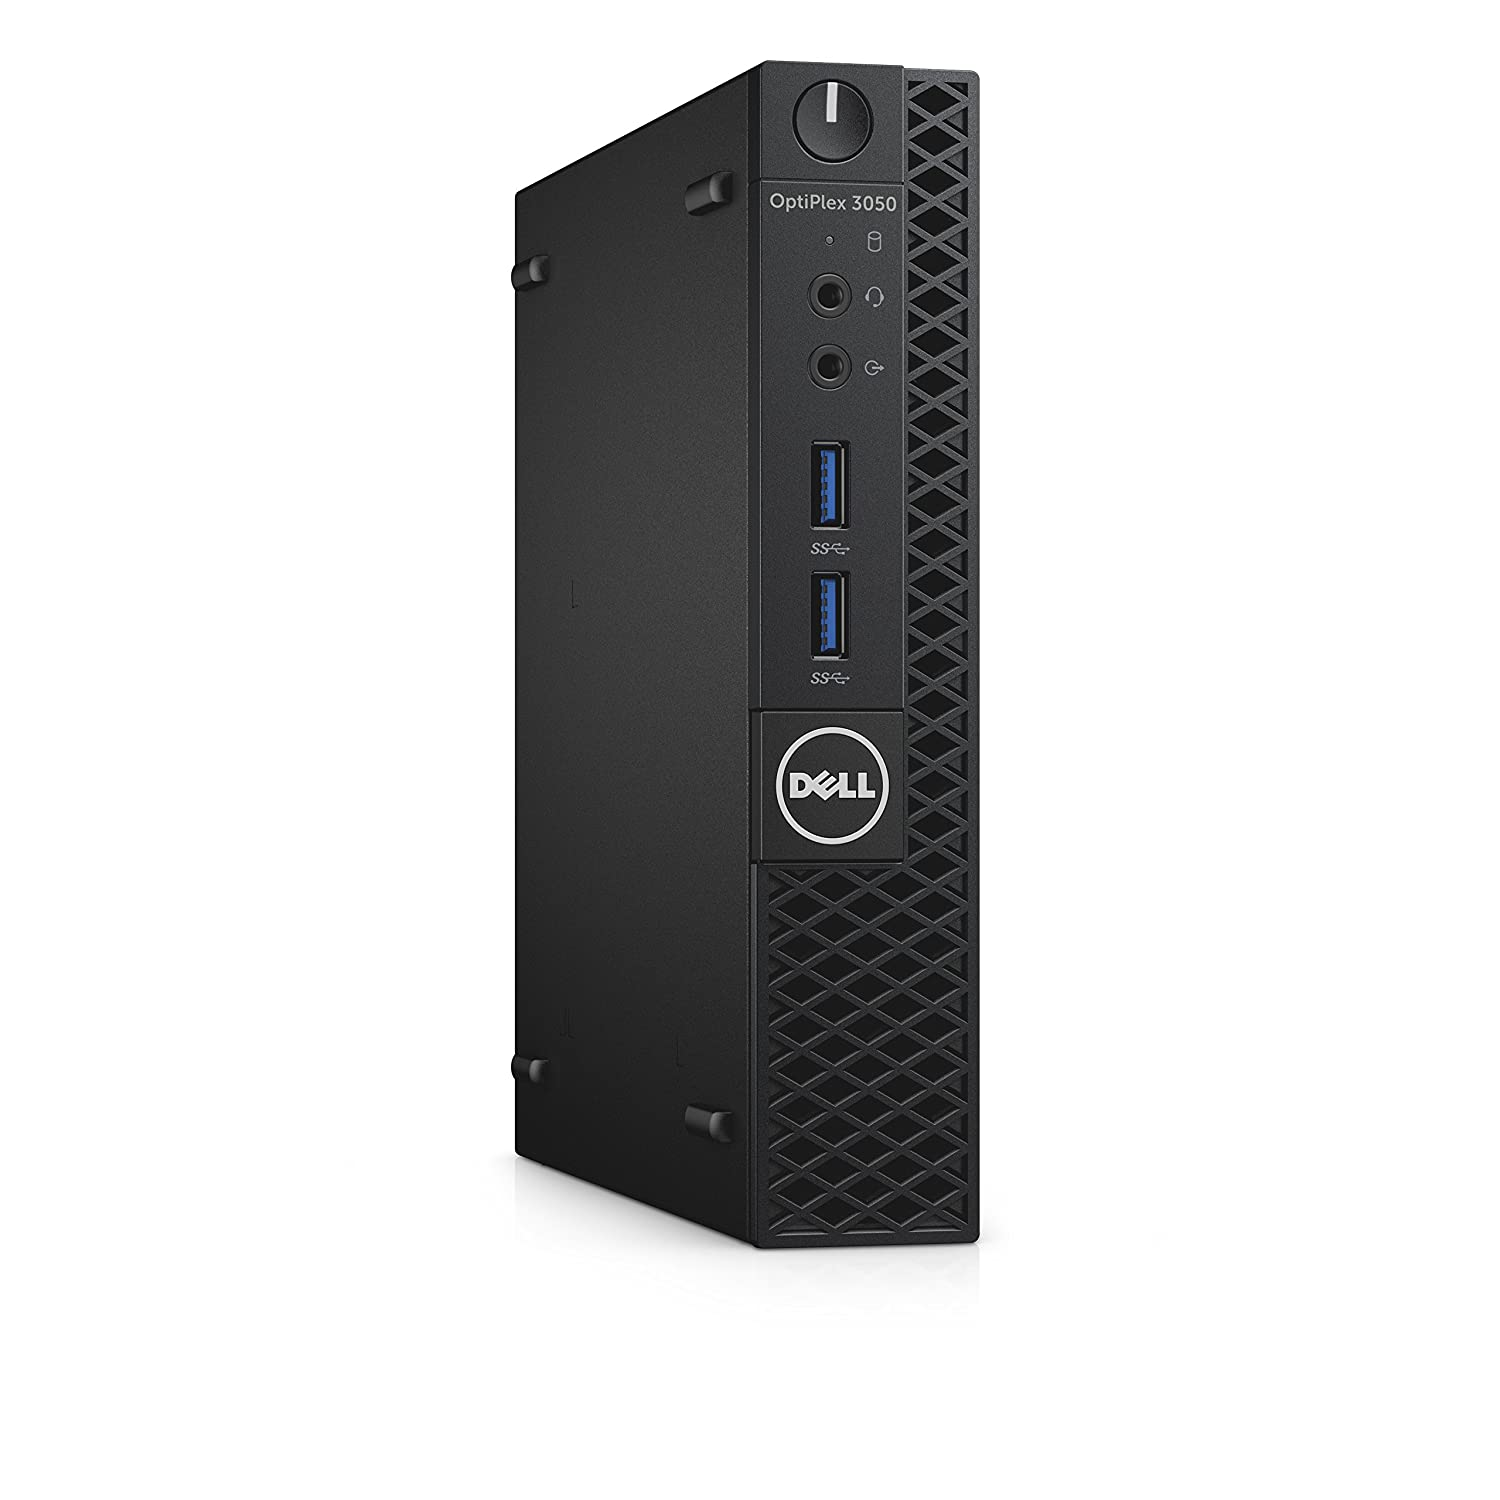 OptiPlex 3050 2,70 GHz 7ª generación de procesadores Intel® Core™ i5 i5-7500T Negro Mini PC